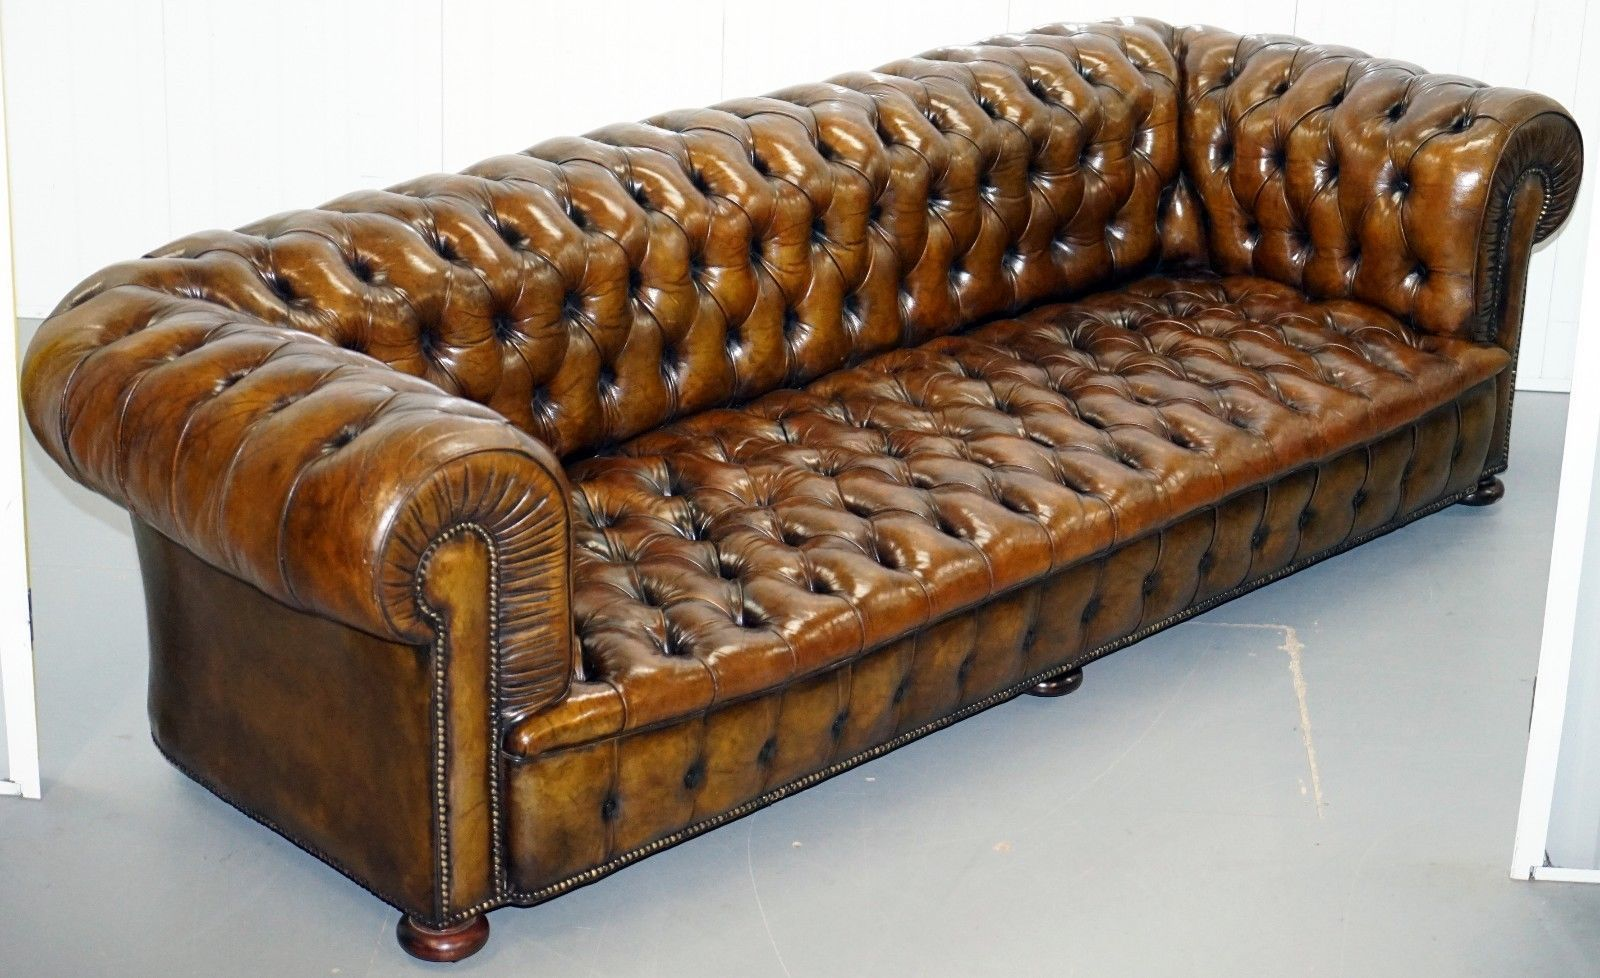 Huge Rare Victorian Horse Hair Fully Restored Brown Leather Chesterfield Sofa